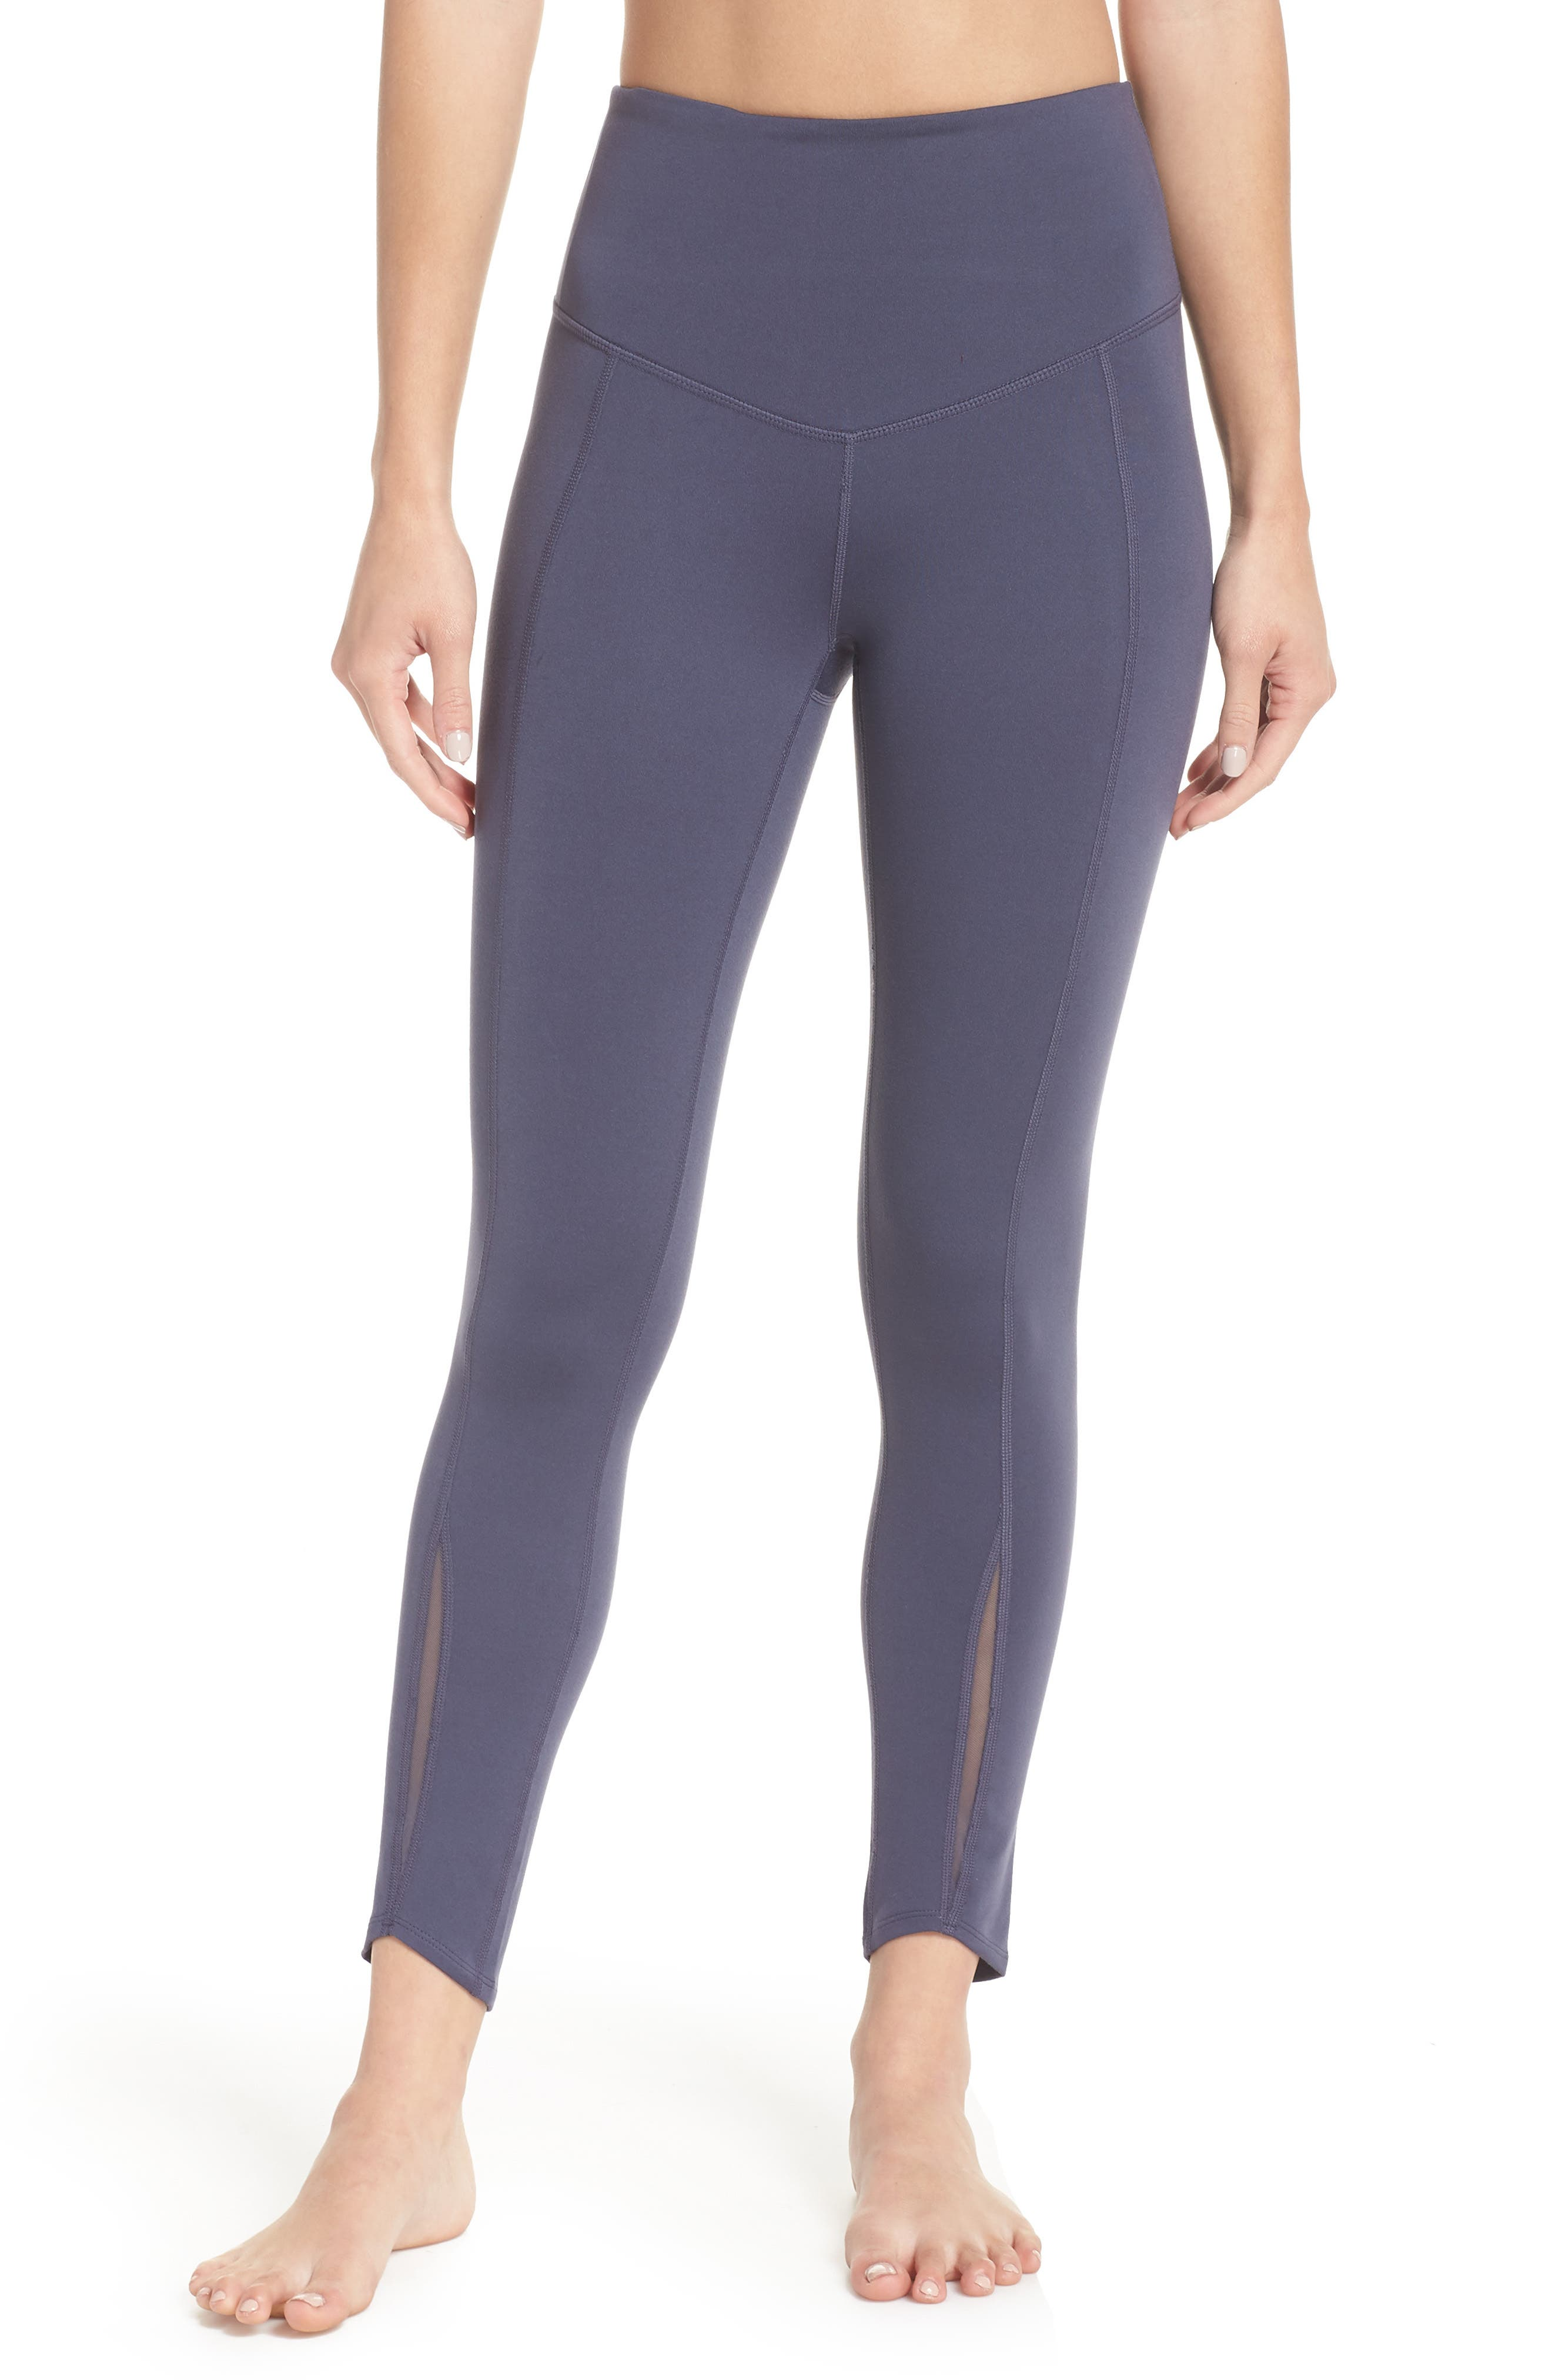 Refocus Recycled High Waist Midi Leggings,                             Main thumbnail 1, color,                             021